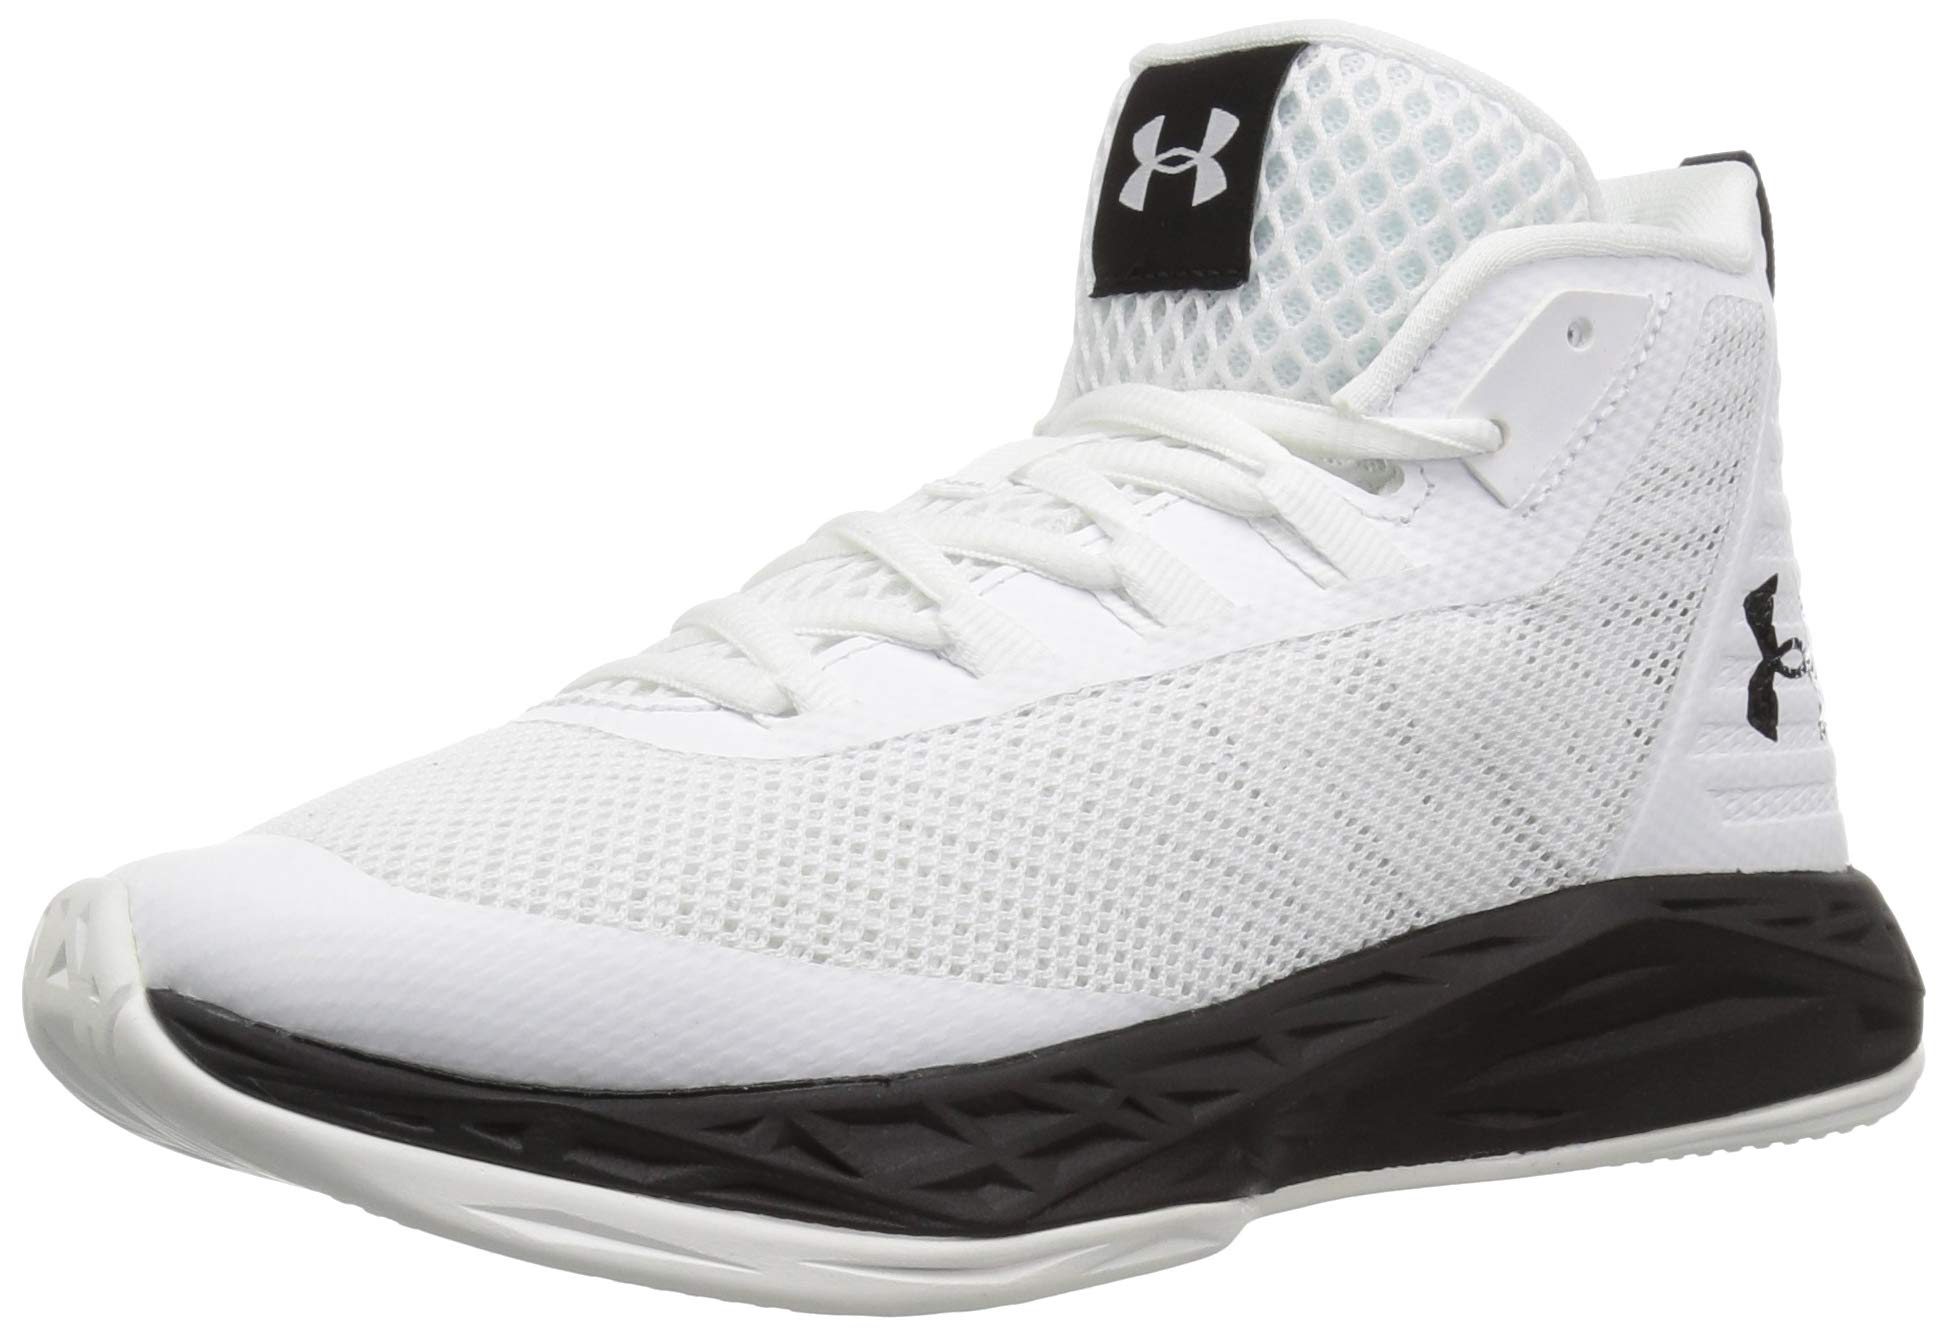 d9be0528e52 Galleon - Under Armour Women s Jet Mid Basketball Shoe